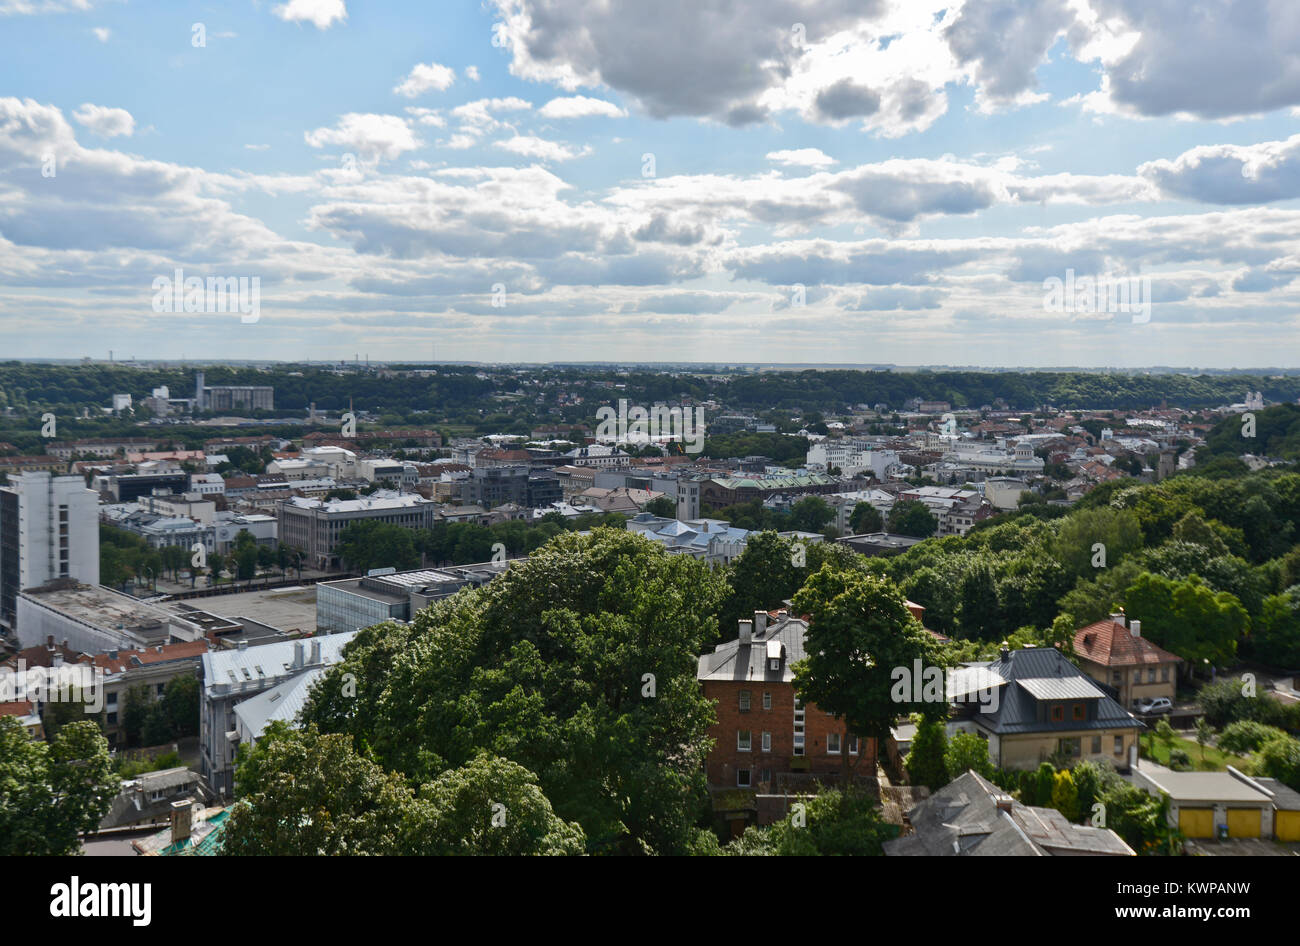 Panoramic view of Kaunas, Lithuania - Stock Image